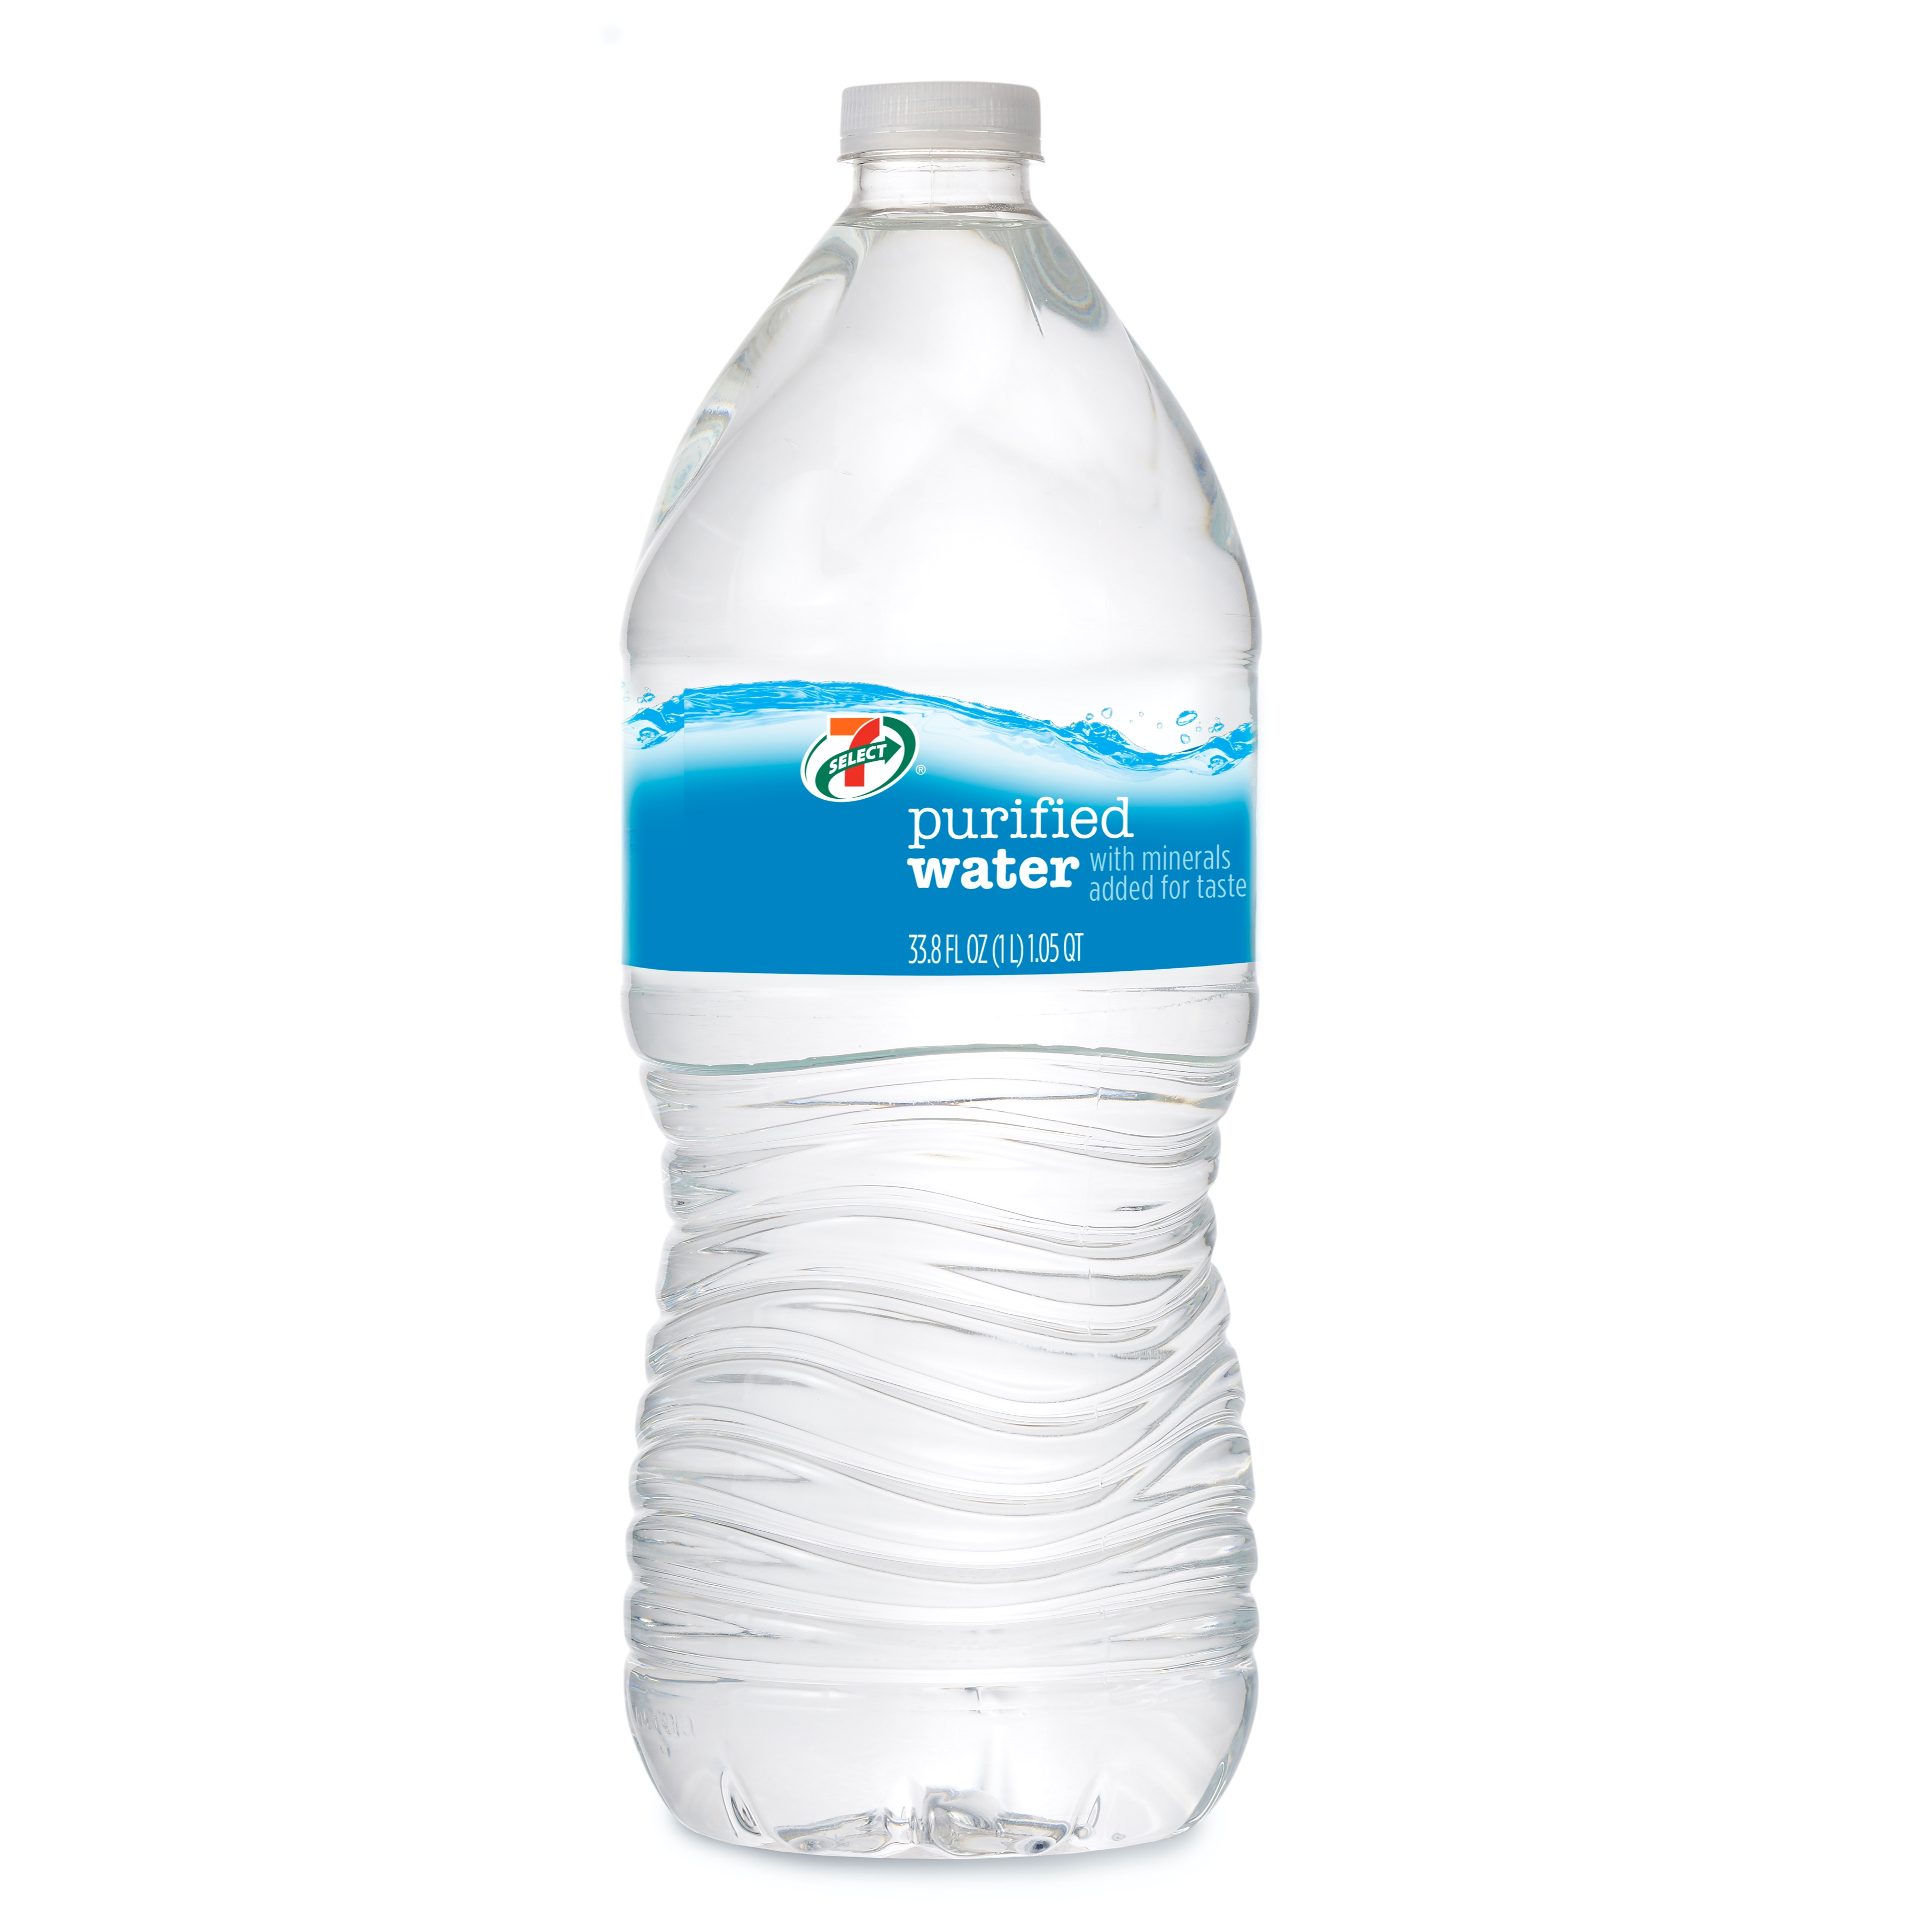 7-Eleven 7-Select purified bottled water.